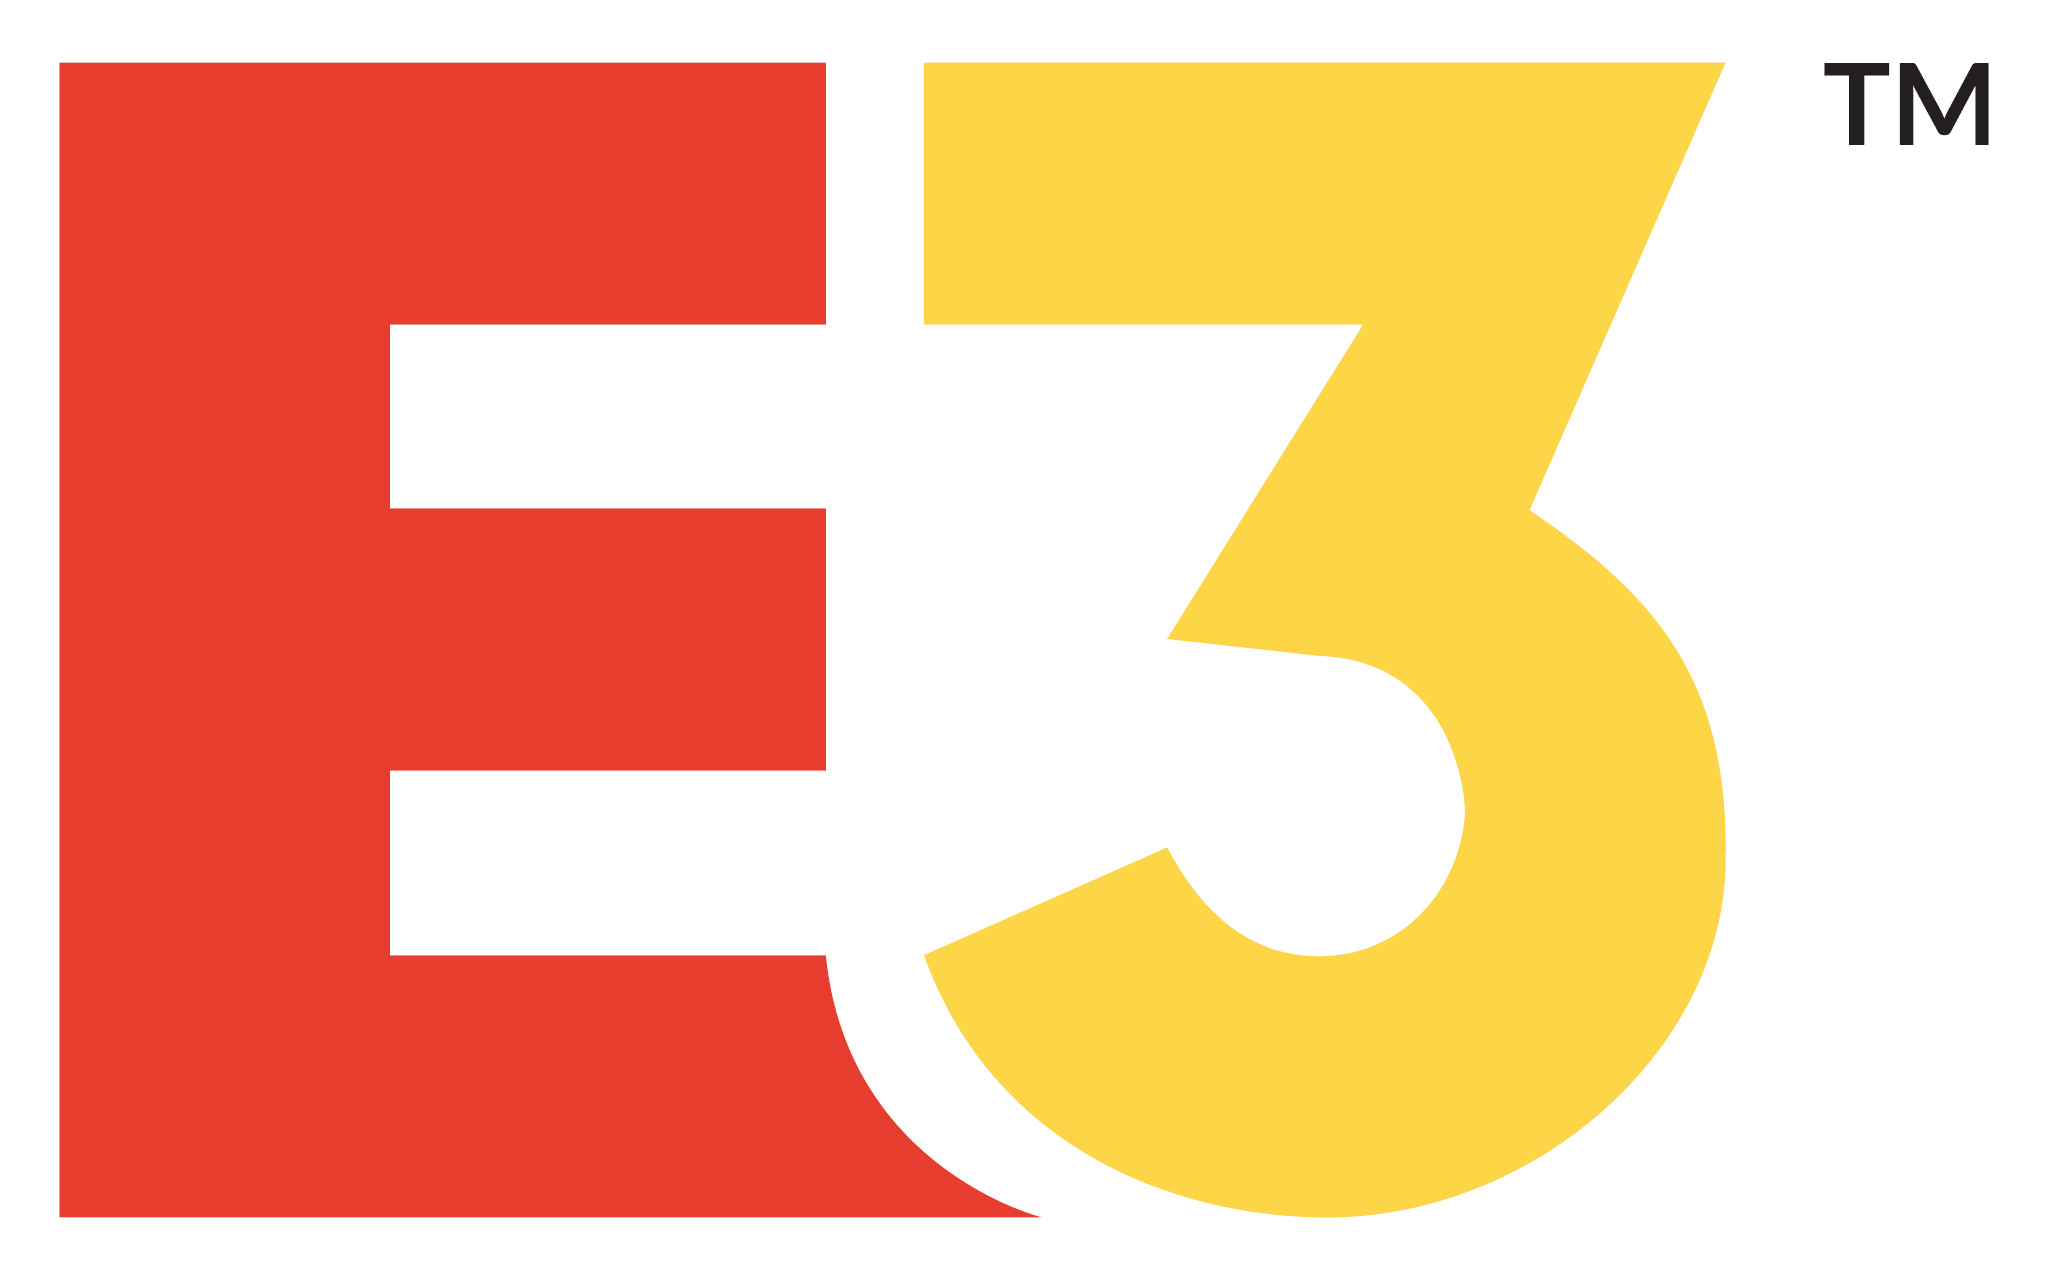 Photo of Top 10 E3 2018 Video Game Announcements According to our Taste